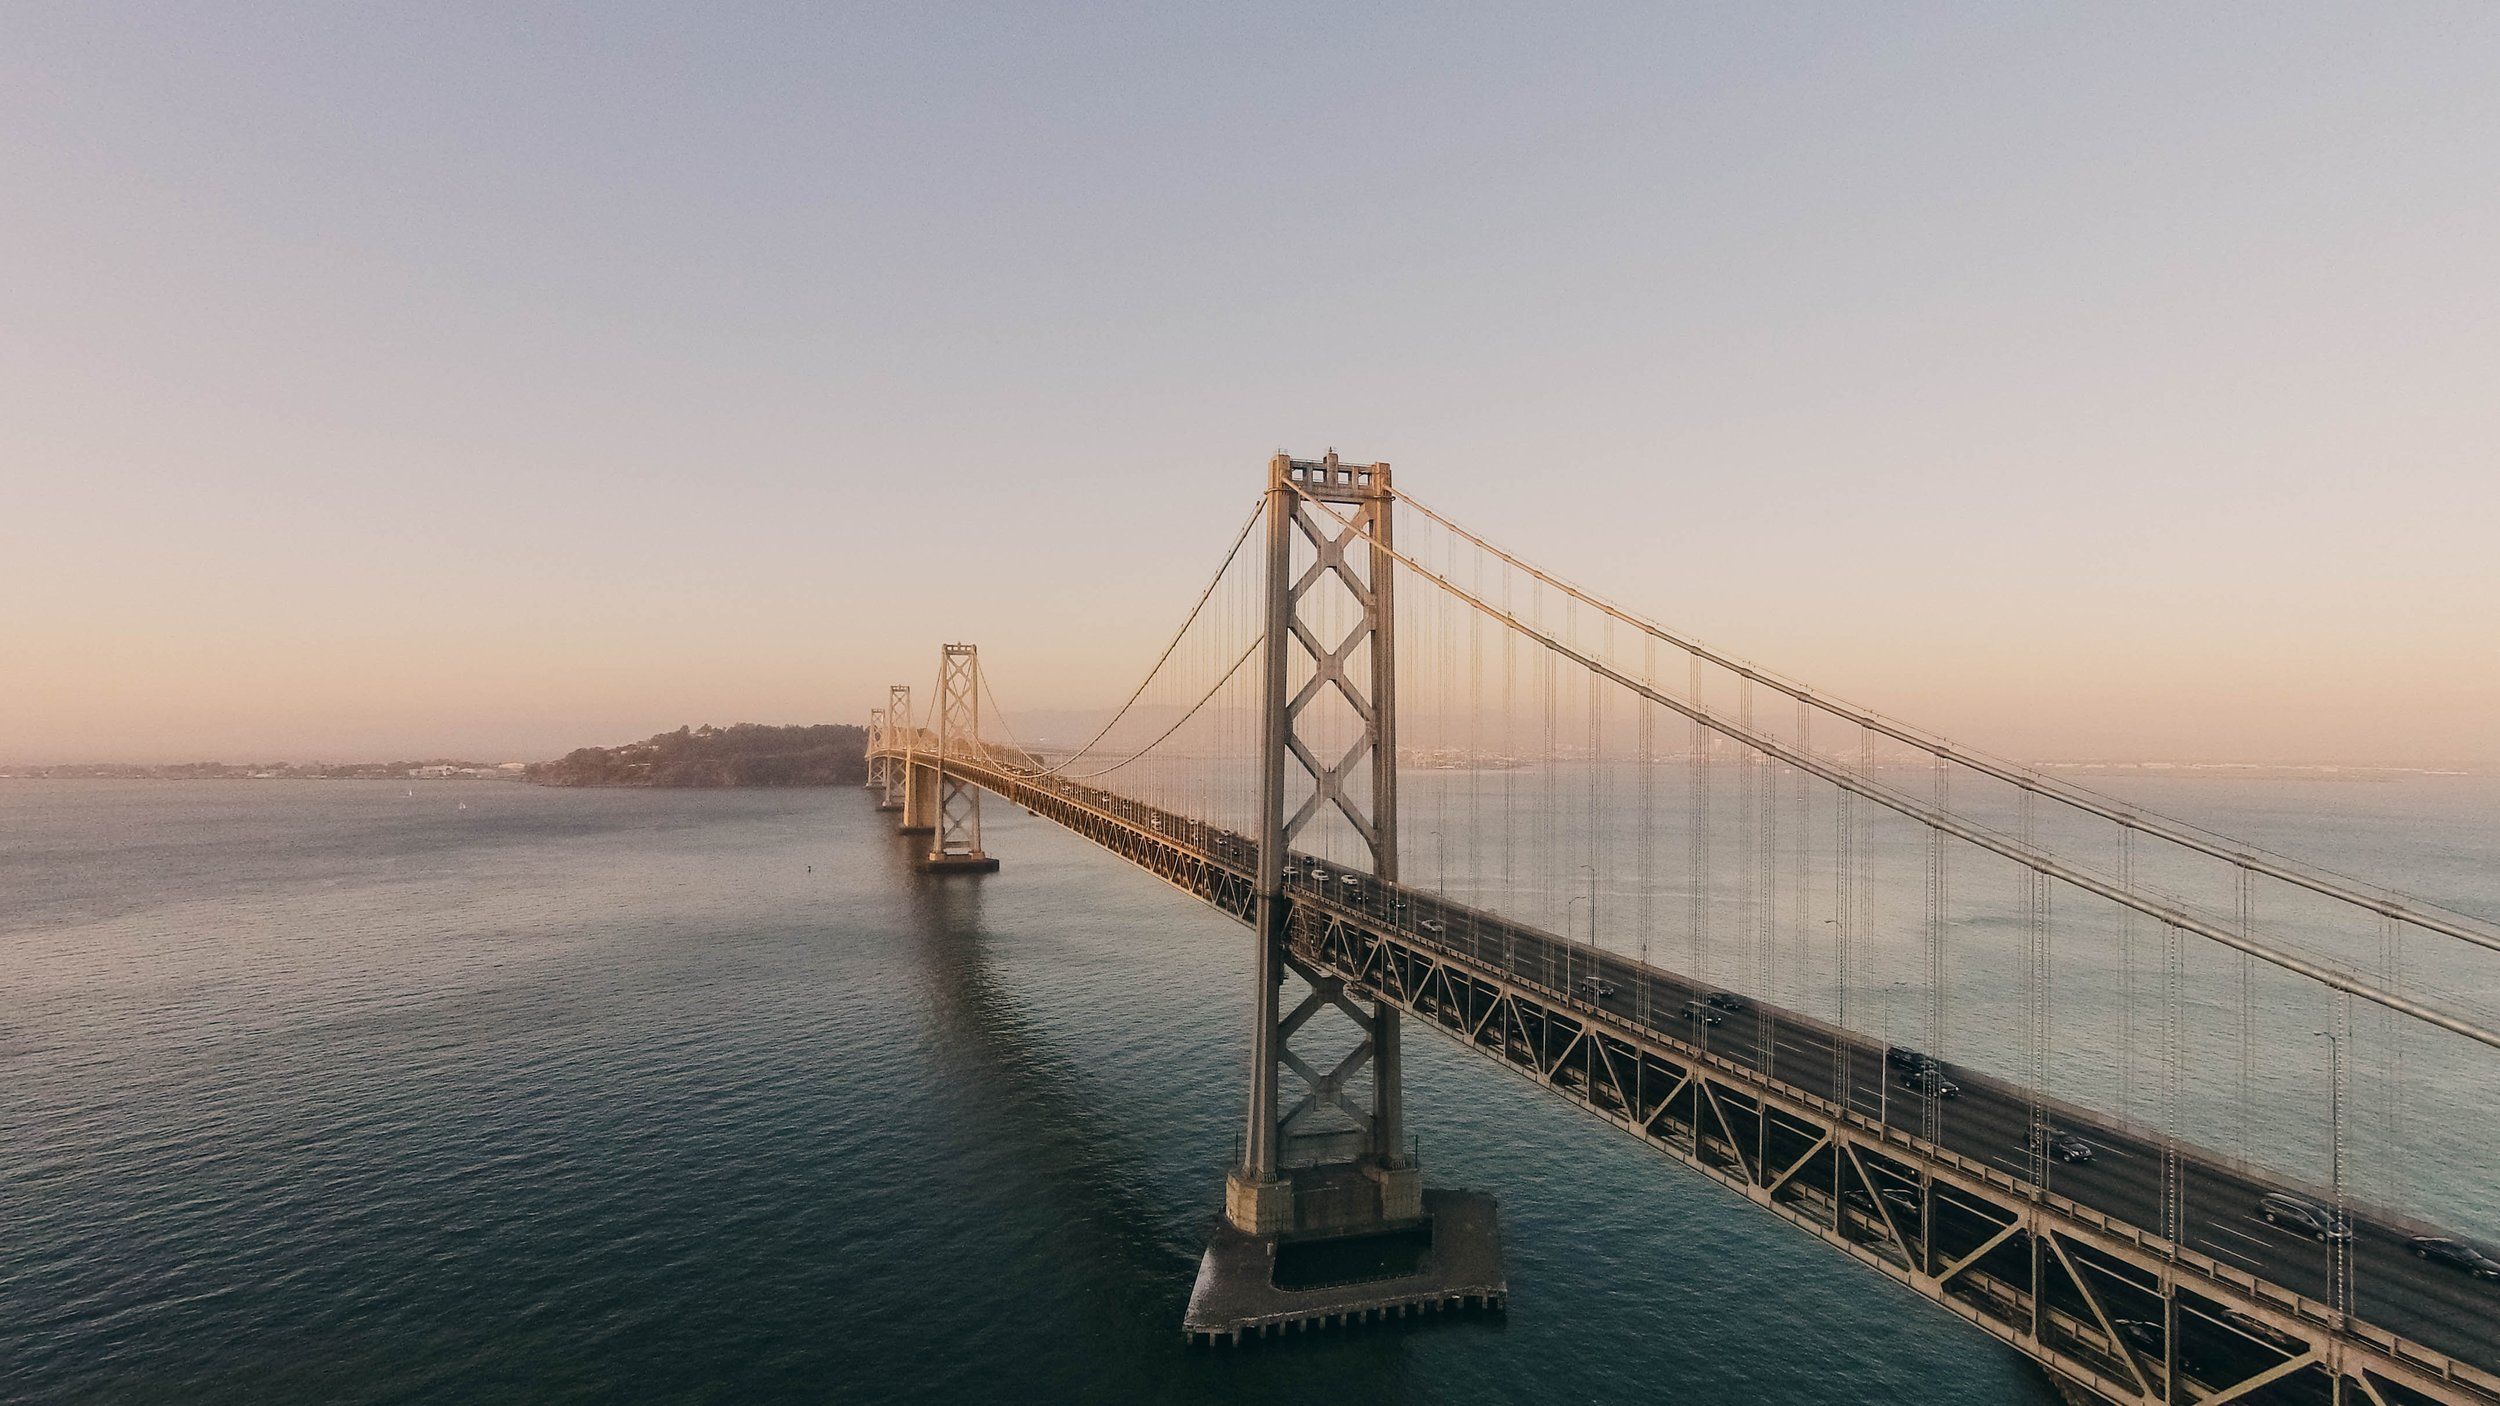 a bay native's guide to sf - Enjoy this curated guide for visitors and locals alike! Explore the posts below to discover good eats, good views and unforgettable experiences.